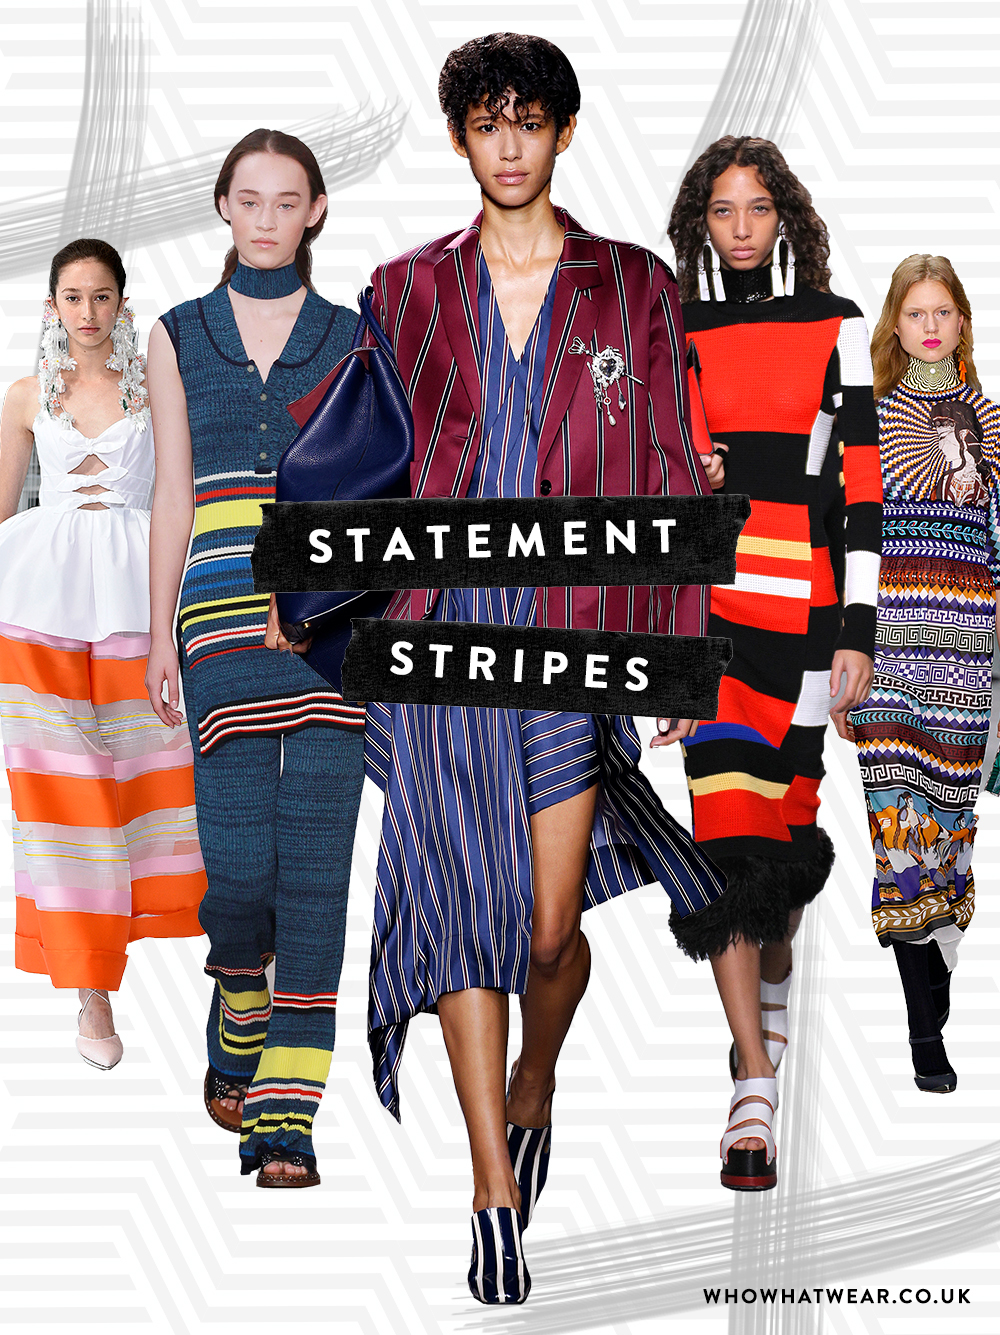 UK-Collage-Statement-Stripes.jpg